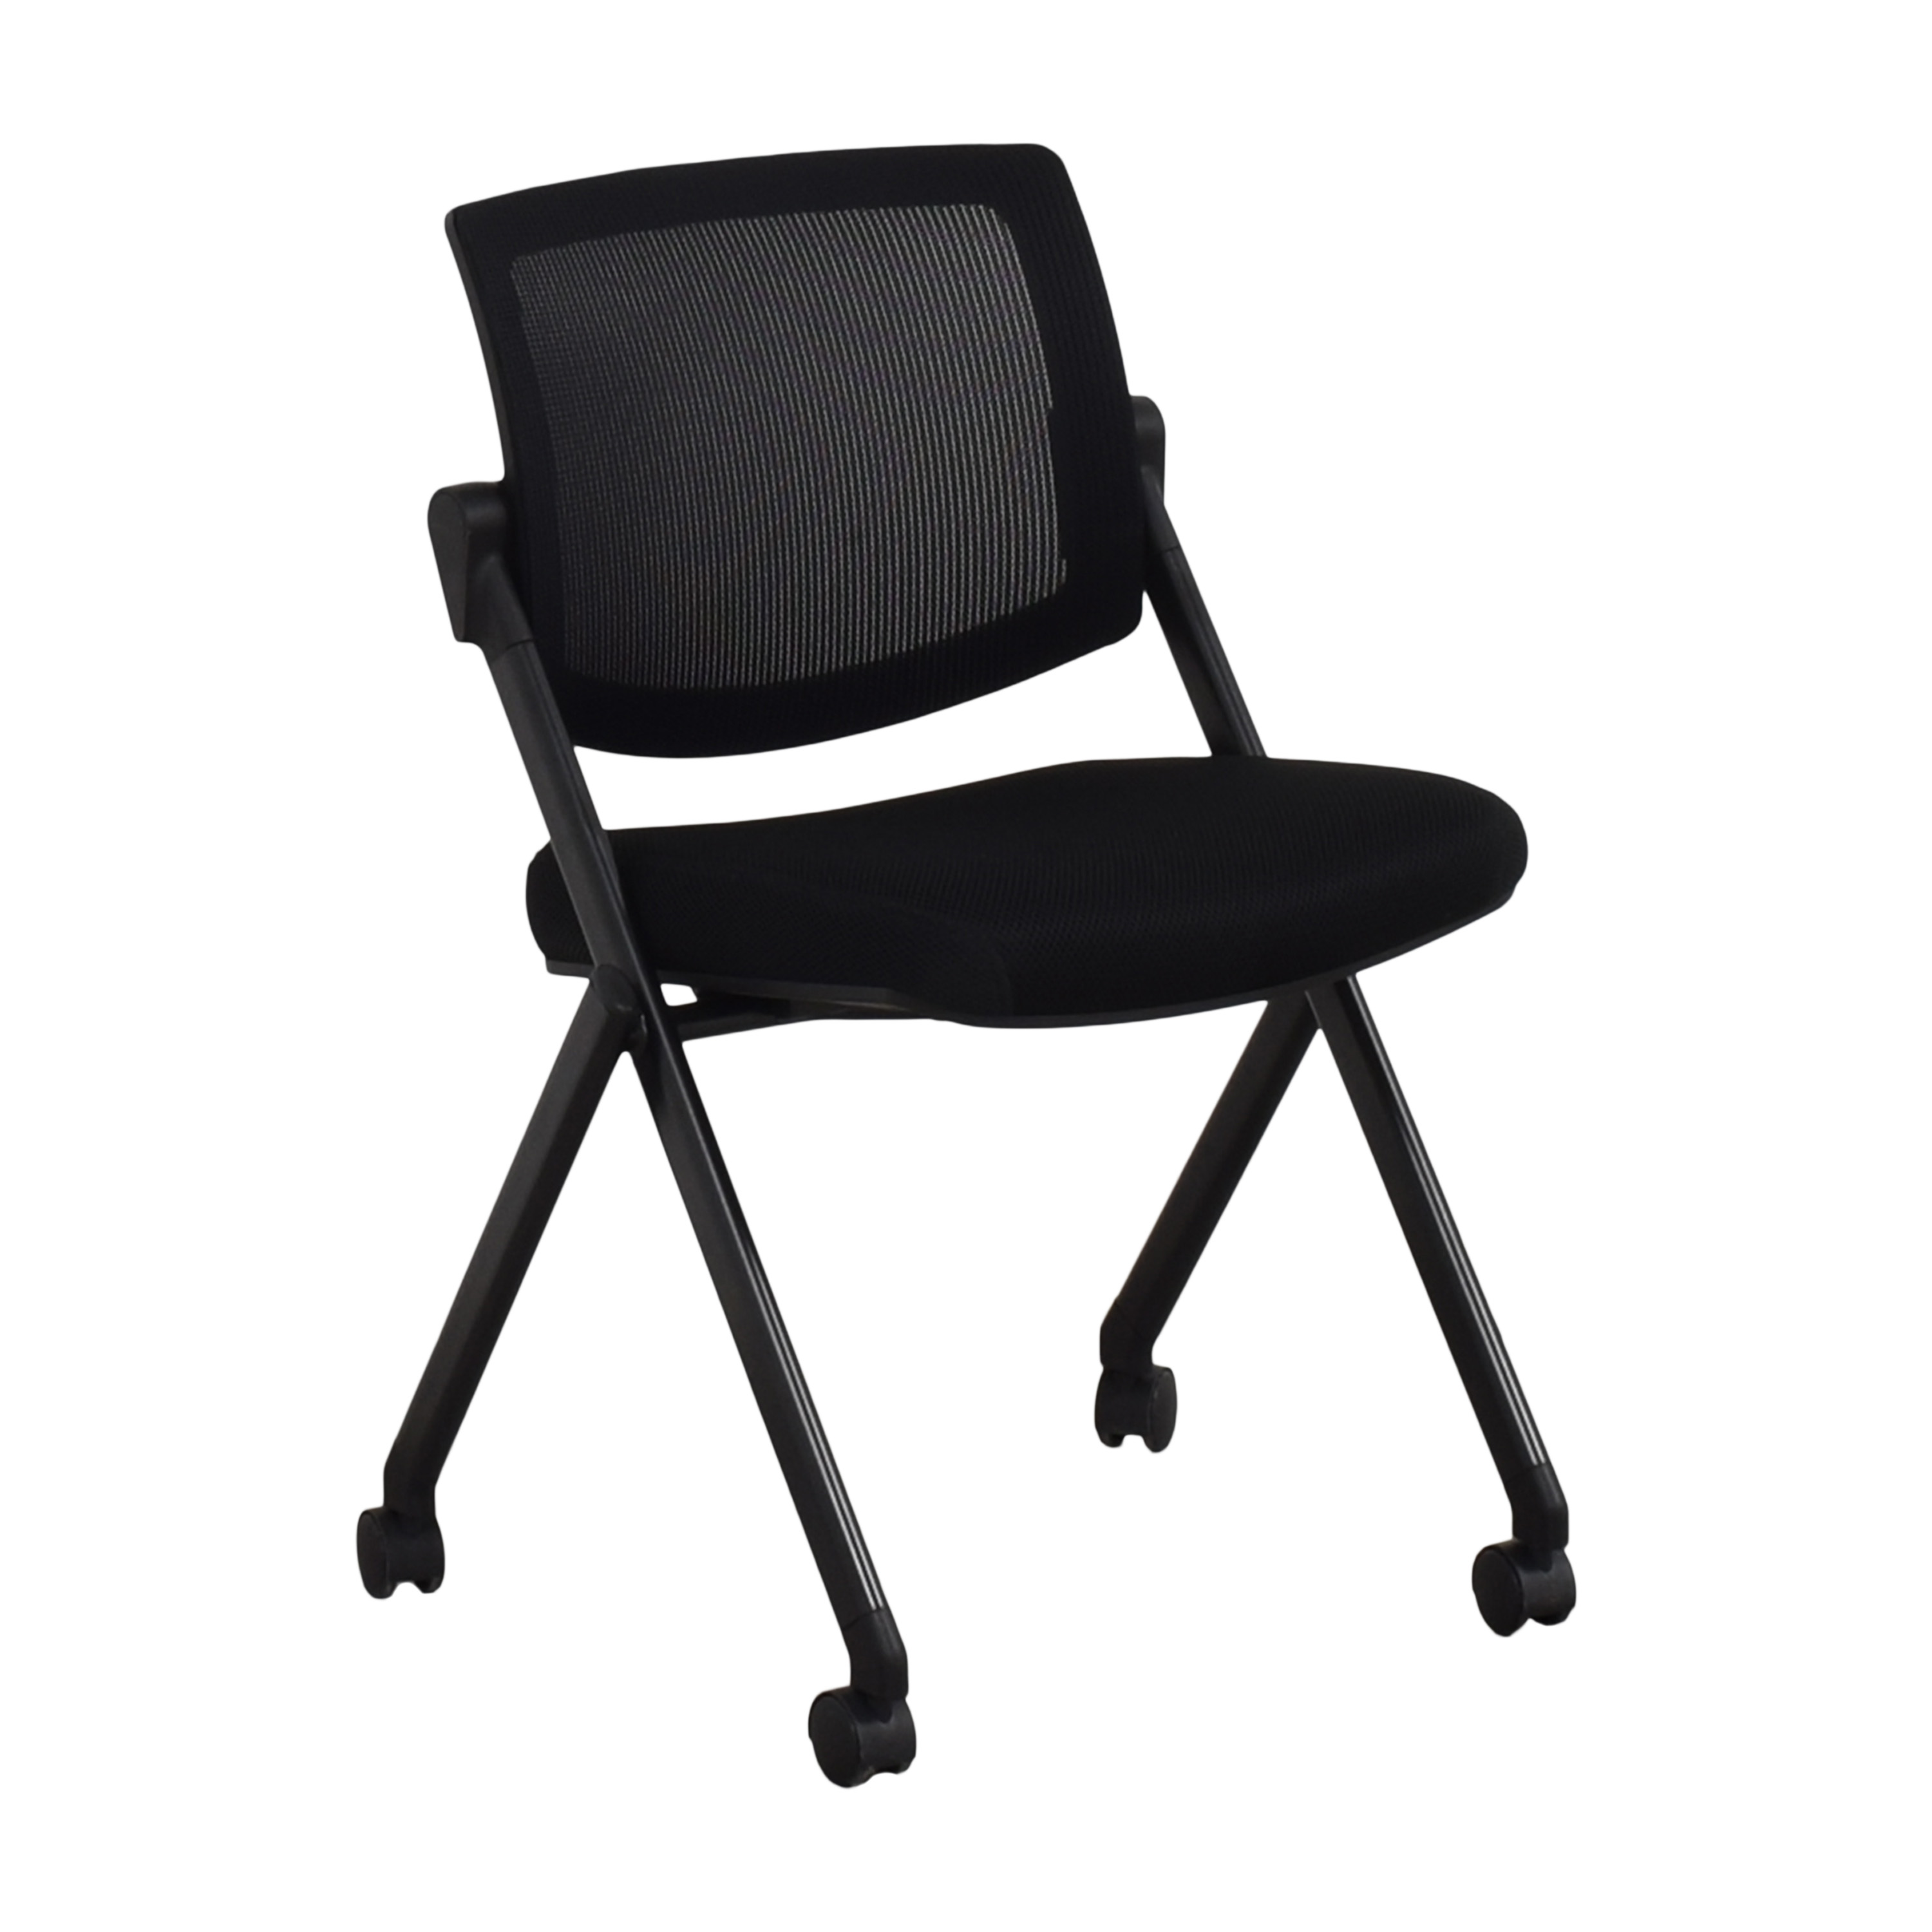 Offices to Go Offices to Go Armless Mesh Back Flip Seat Nesting Chair black